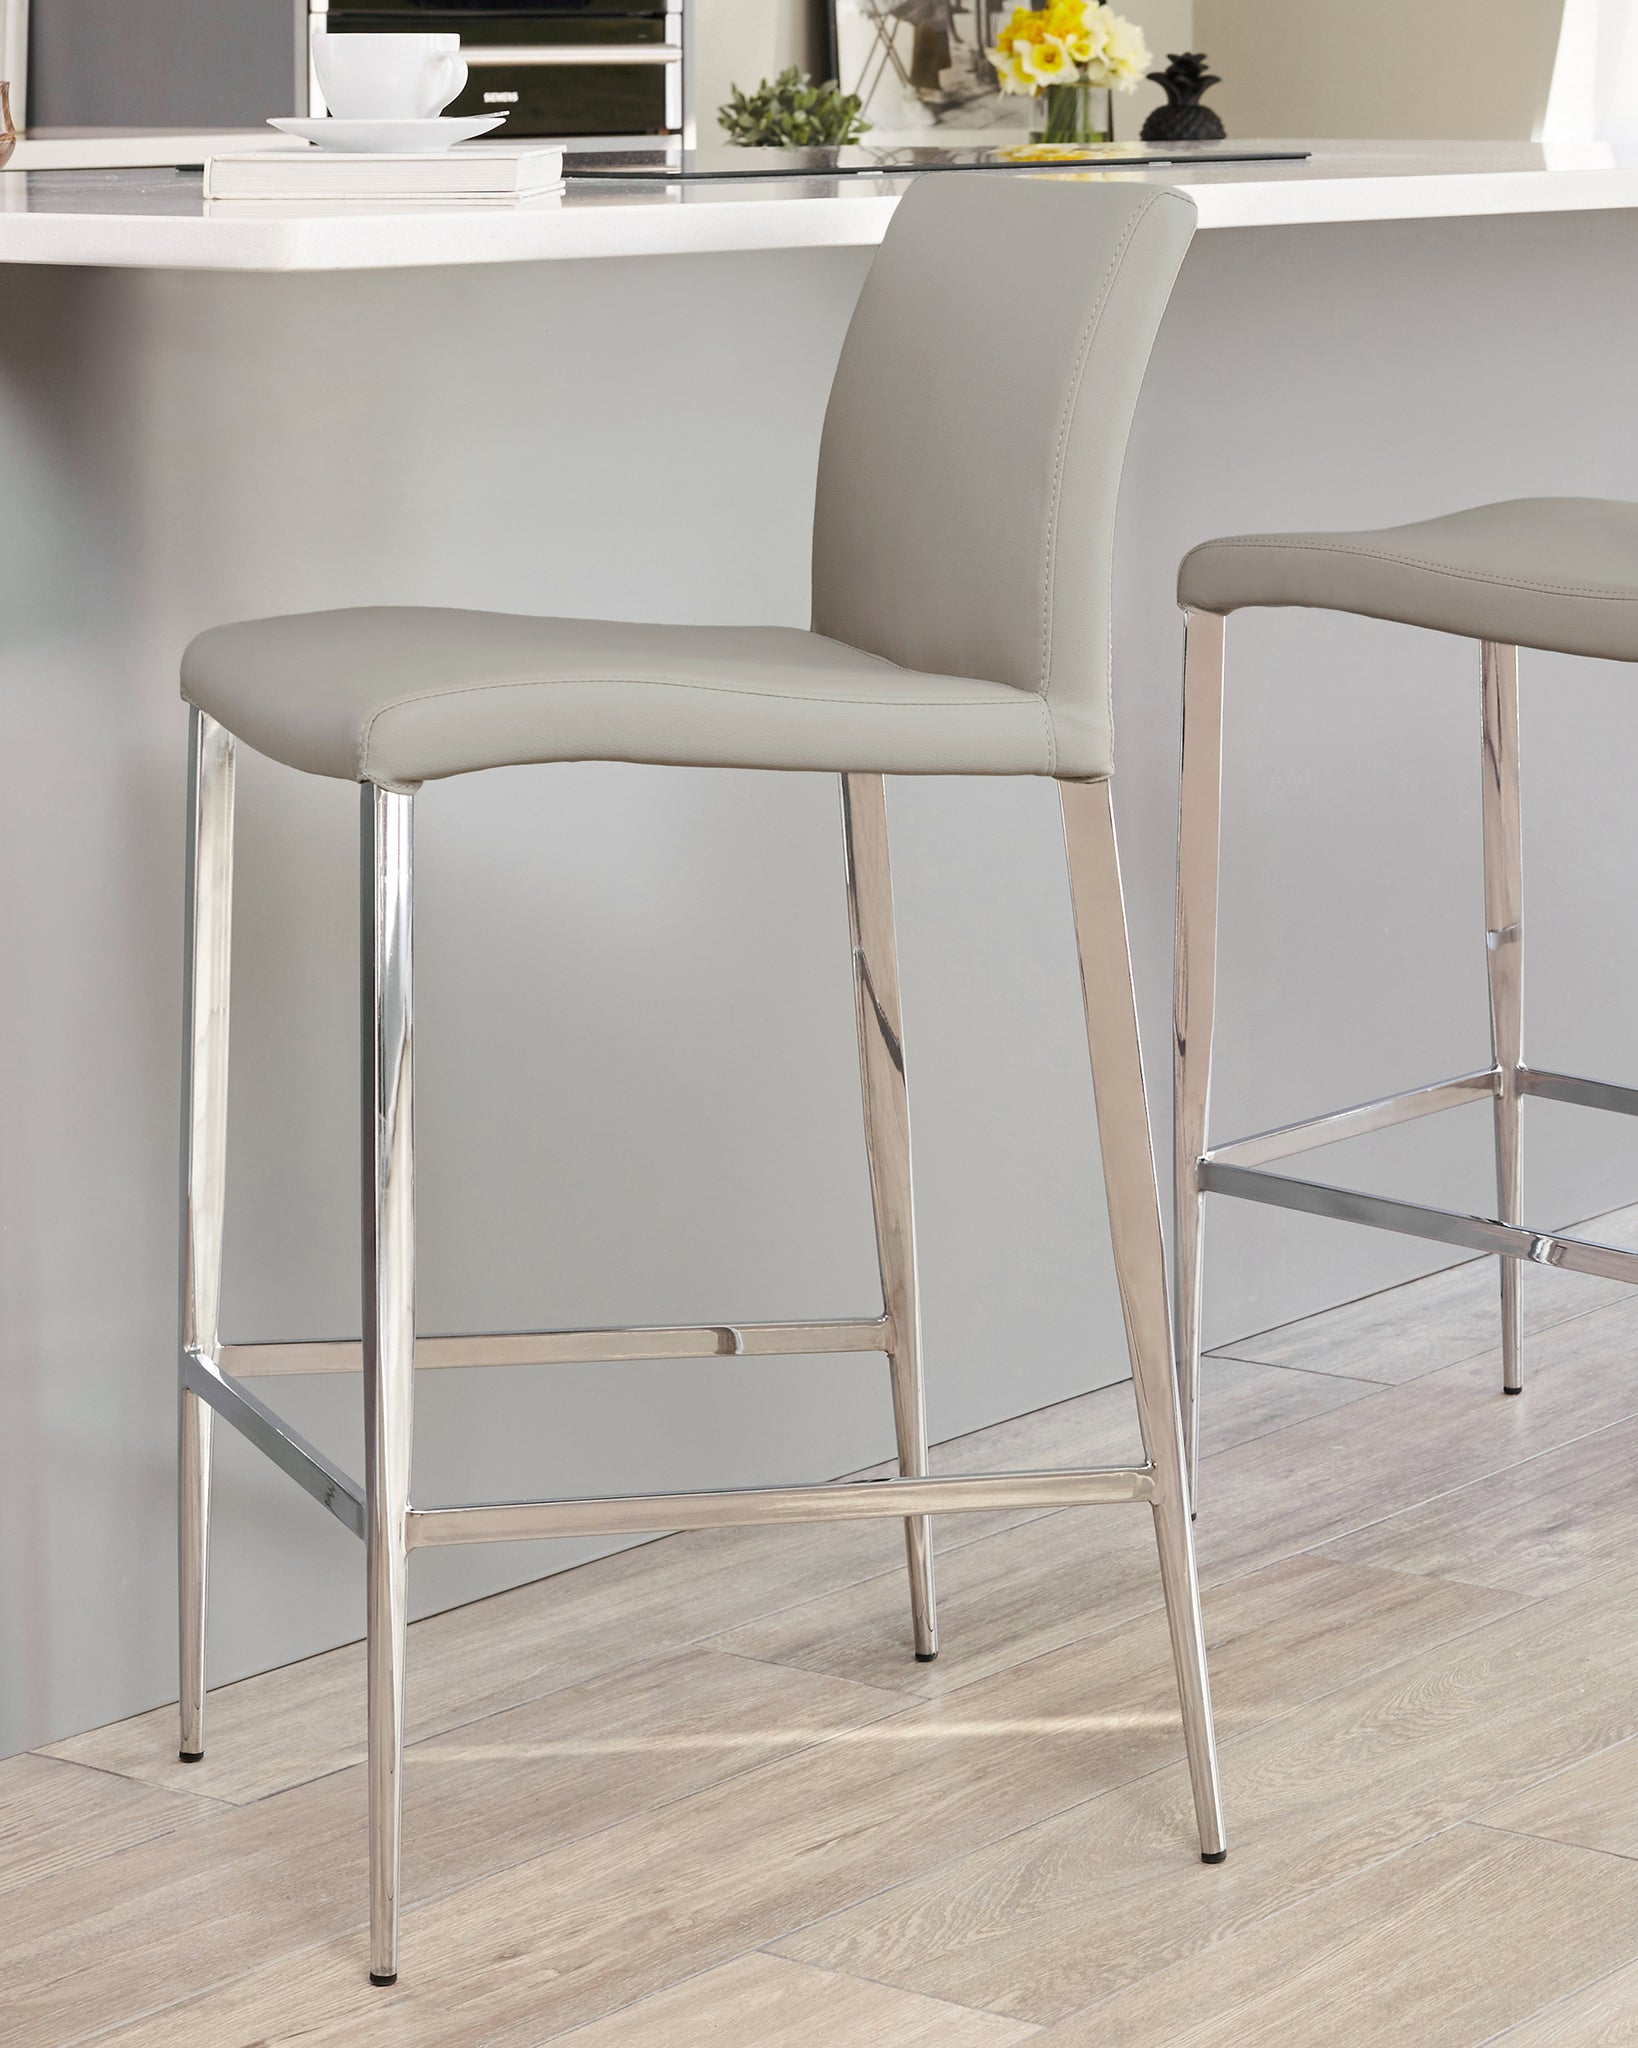 Elise Light Grey Faux Leather Bar Stool - Set Of 2